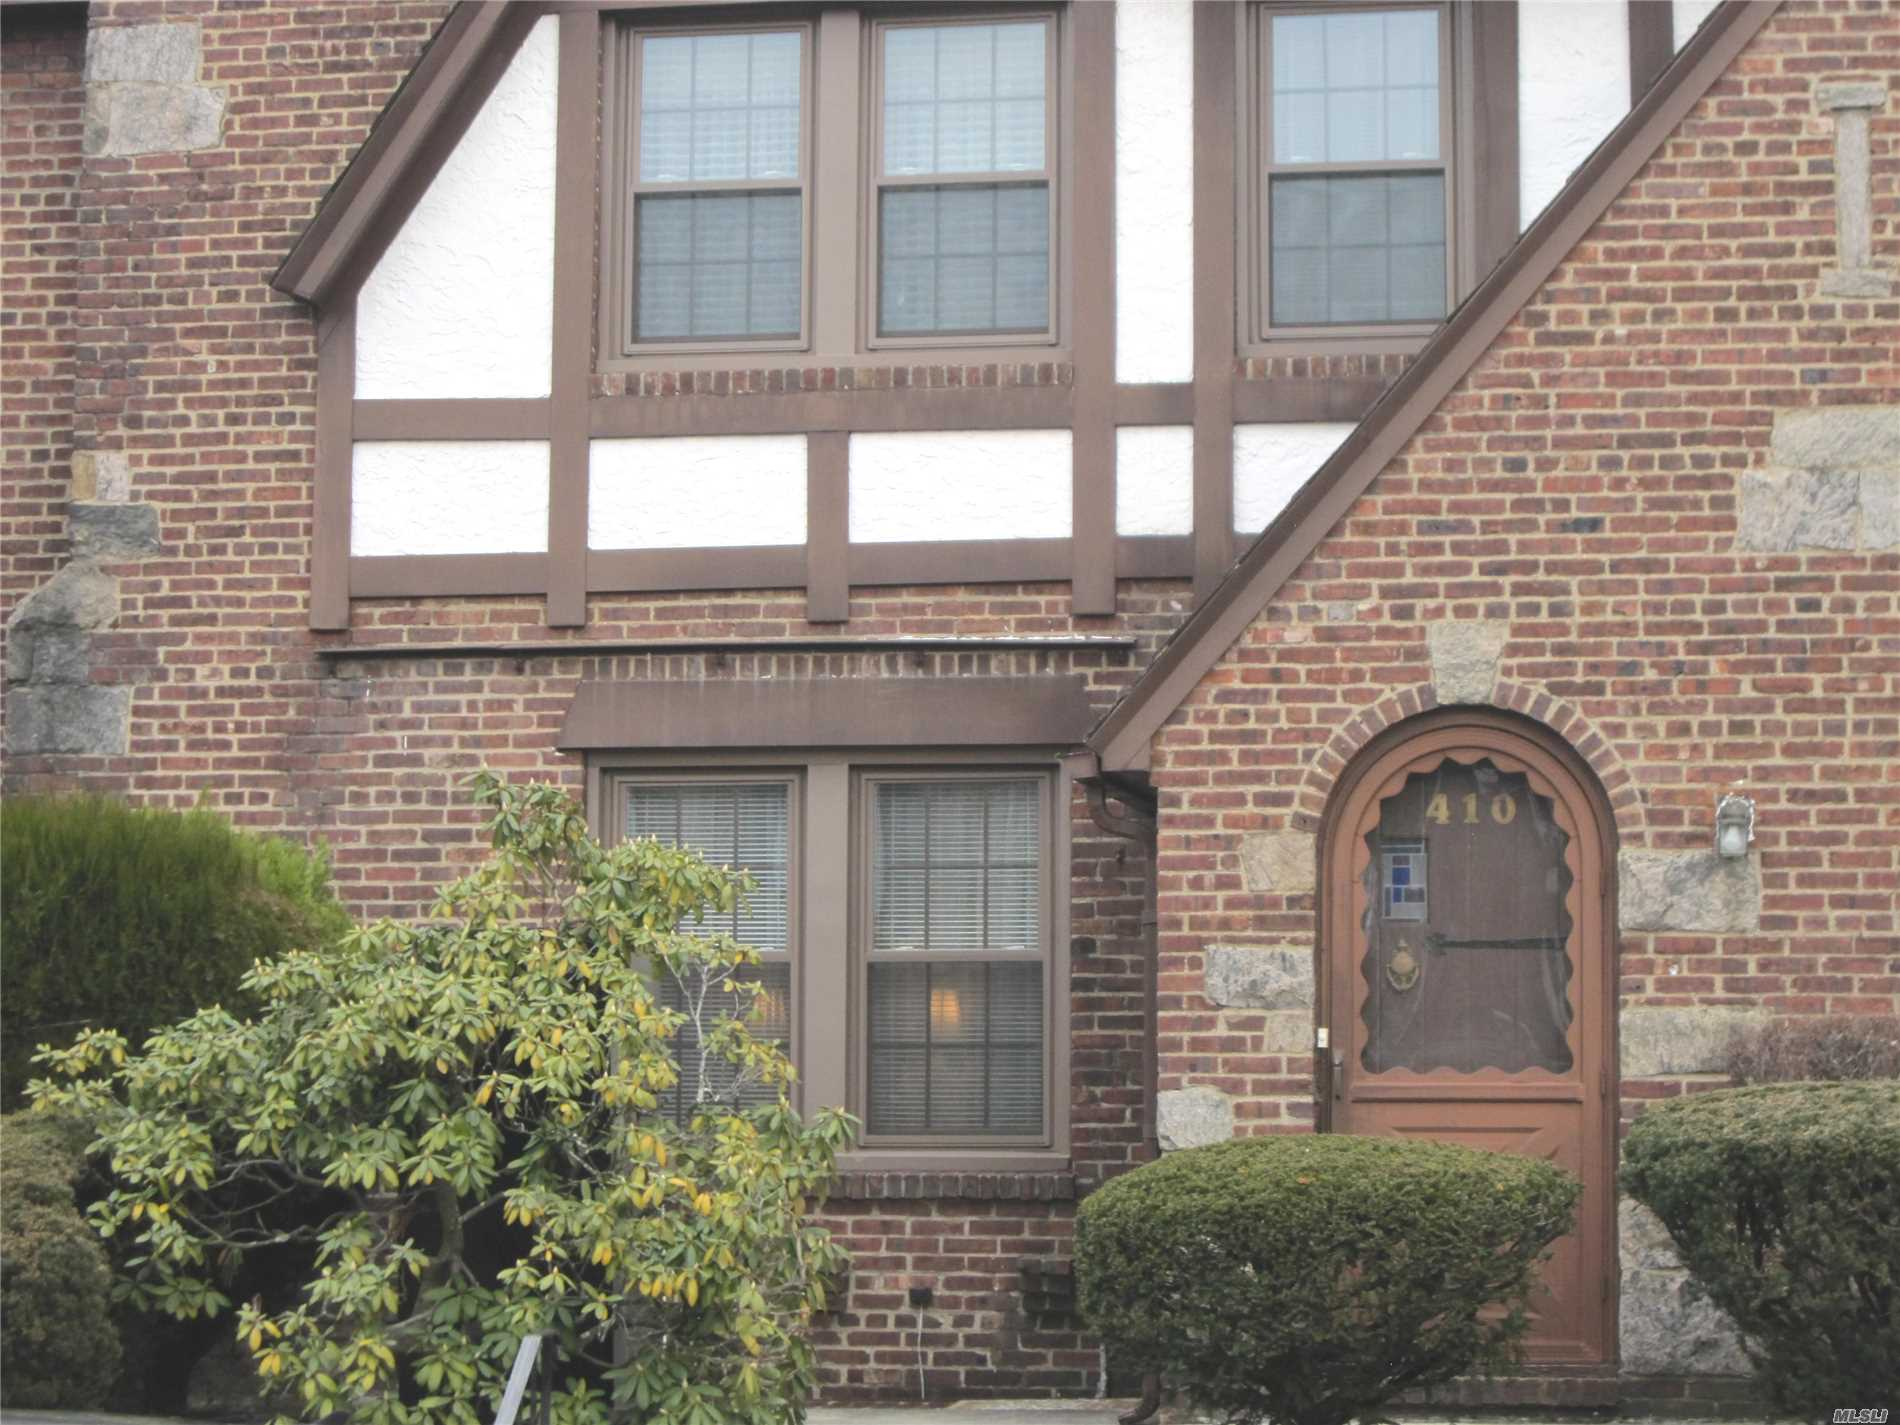 Charming, Bright Tudor Featuring High Ceilings And Beautiful Wood Floors Throughout. Large Living Room With Fireplace And Beautiful Formal Dining Room, Perfect For Entertaining. Meticulously Maintained With Gas Heat And New Windows. Ample Storage. Near Restaurants, Shopping, Hospital And Lirr.